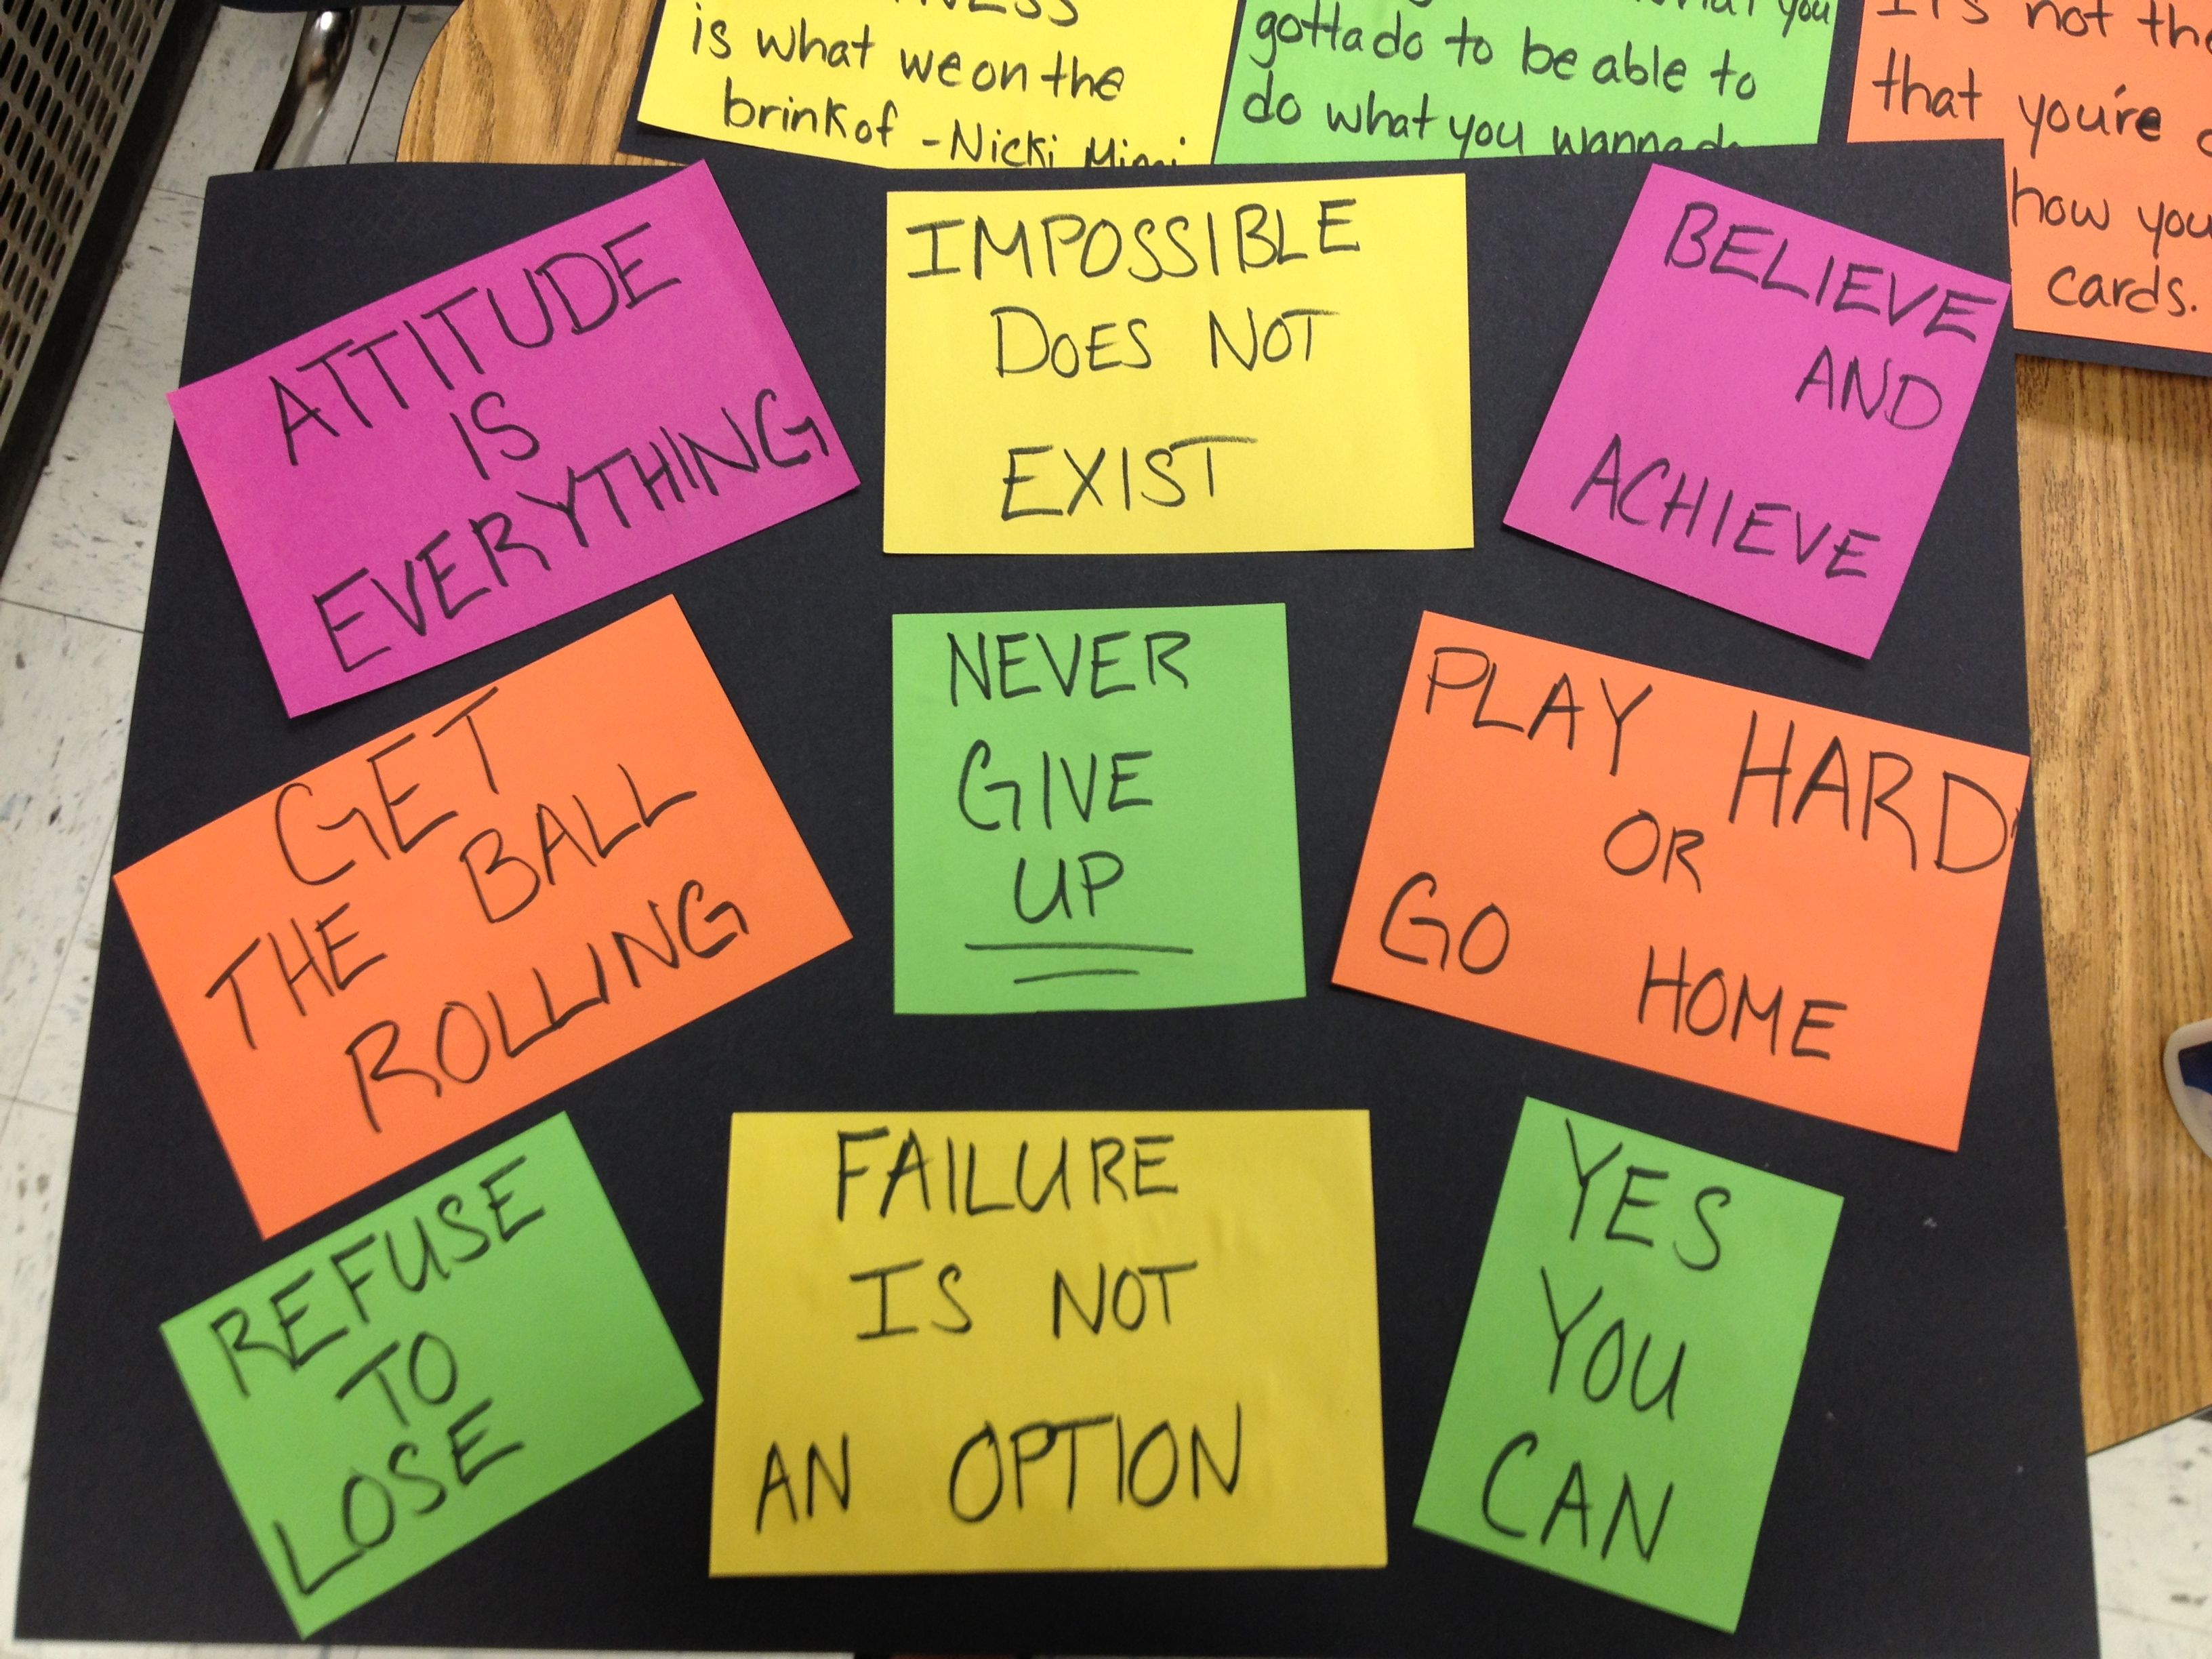 motivational slogan What we sometimes need is to take a step back and take a moment to contemplate we all need some source of inspiration, so here are 40 motivational quotes from famous people that you can share to inspire and boost your team's morale.